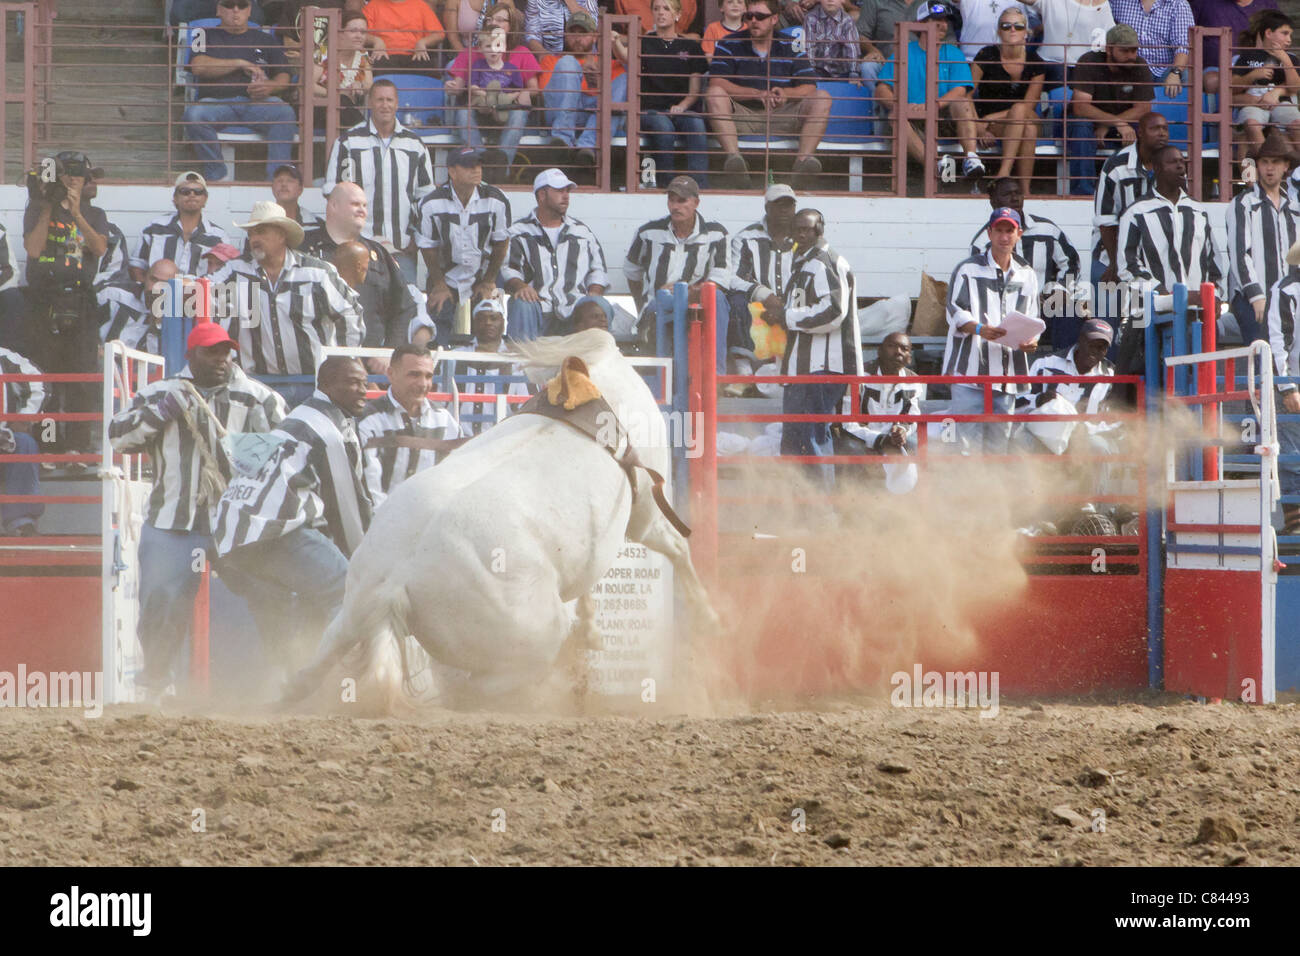 Wild Horse Race at the Angola State Prison Rodeo in Louisiana State Penitentiary - Stock Image